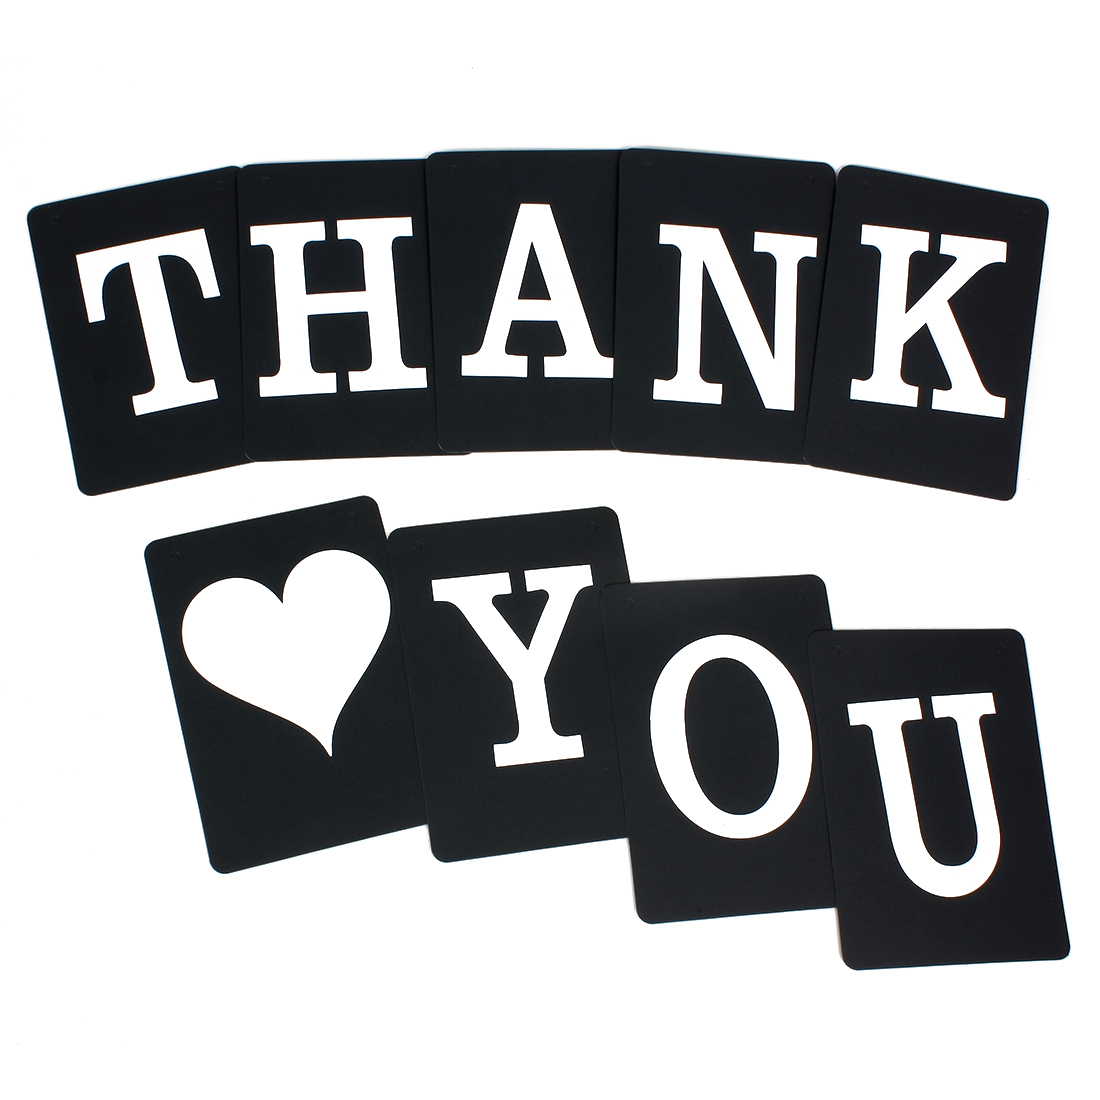 THANK YOU Bunting Sign Wedding Birthday Banner Photo Prop Party Decor Black